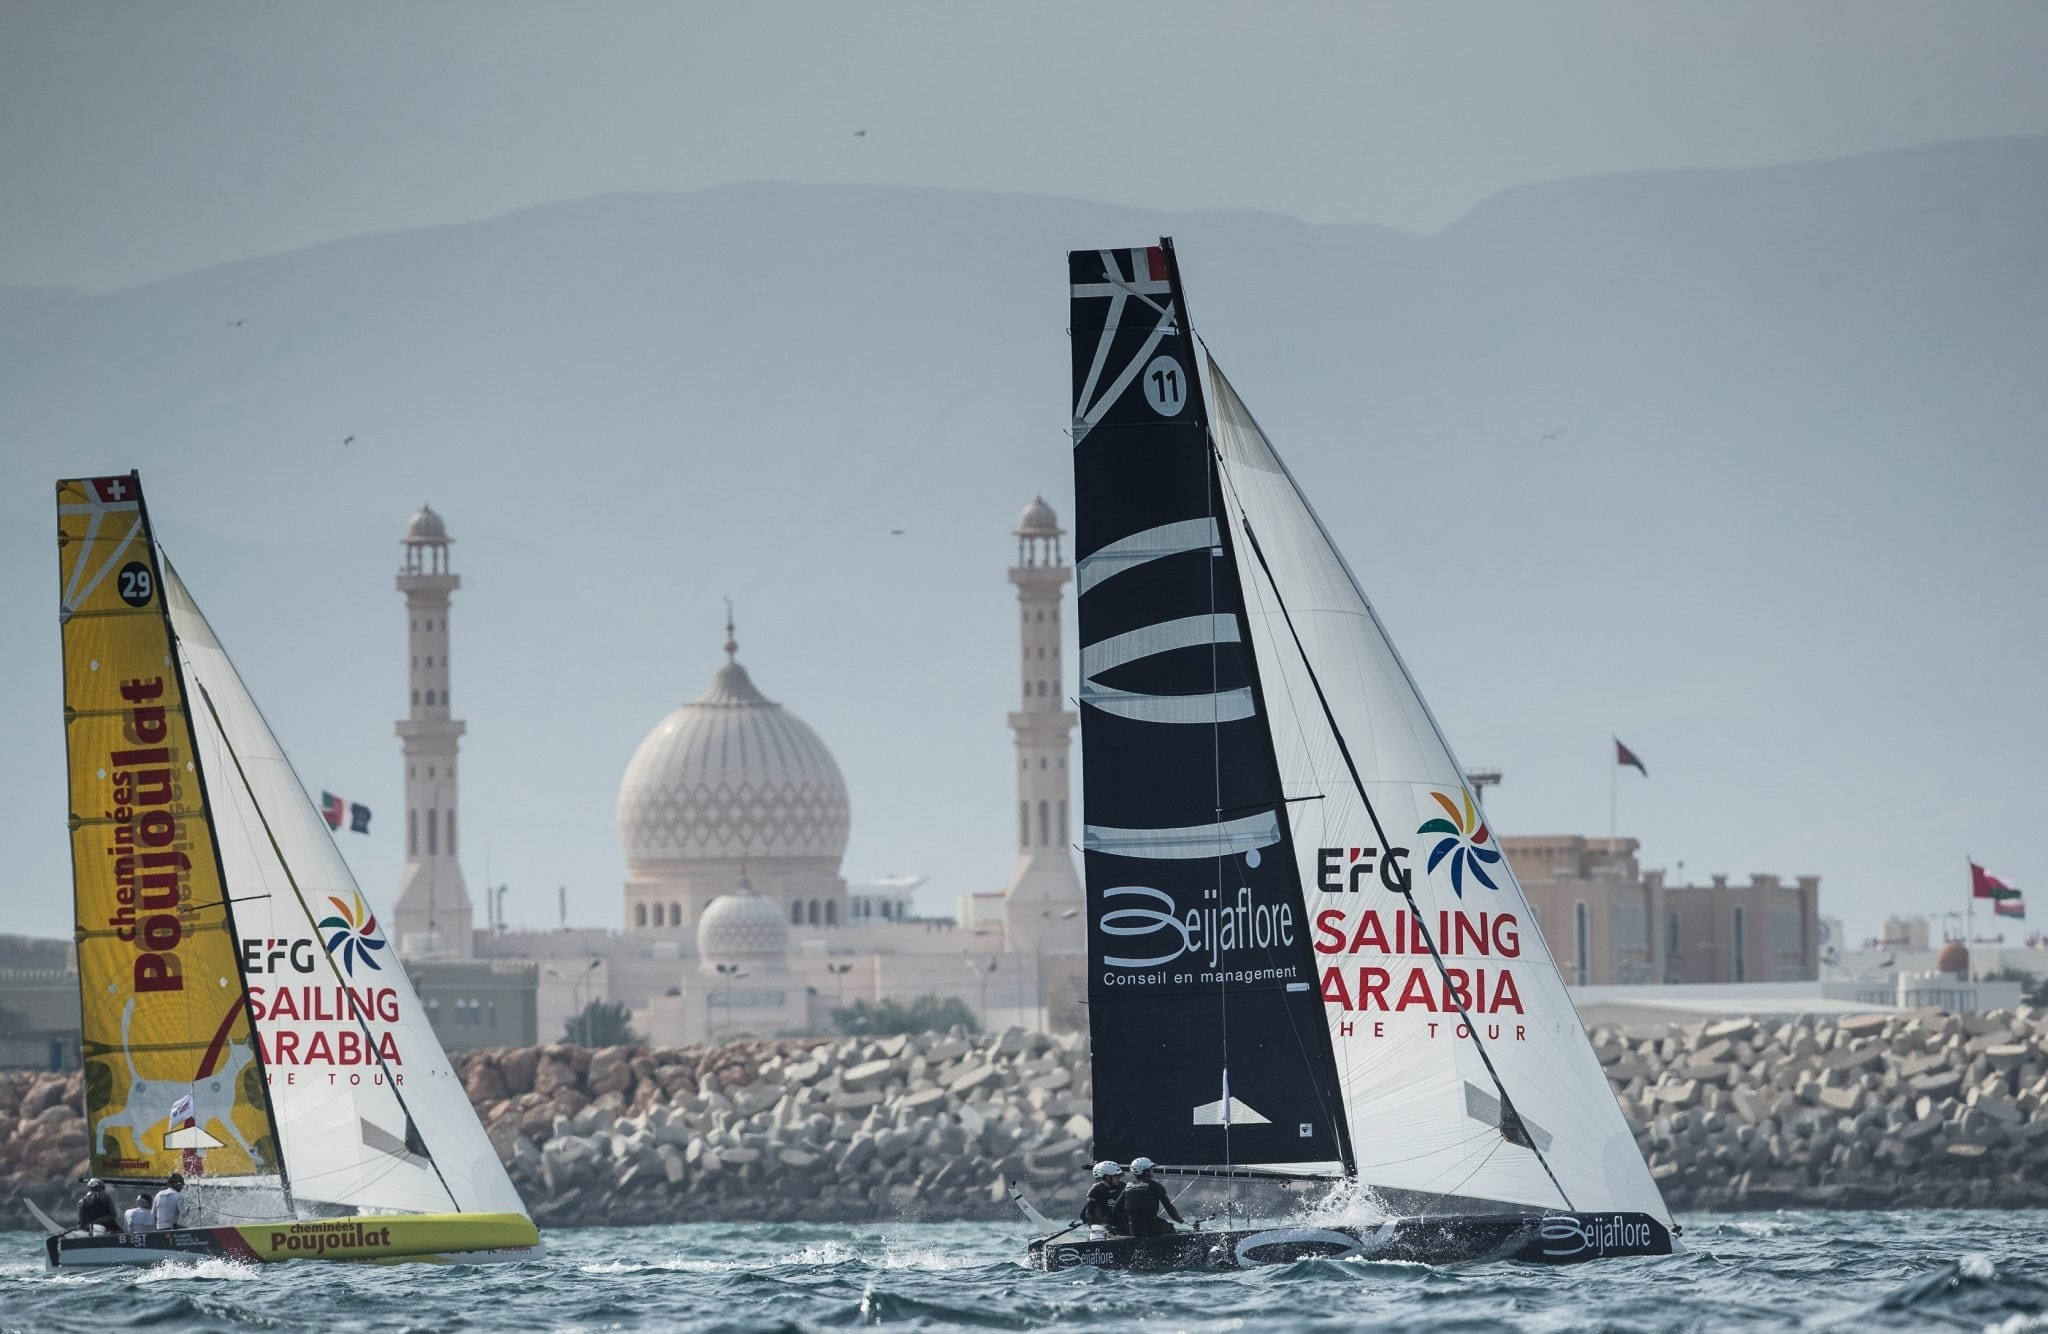 Three from four for Beijaflore as they win EFG Sailing Arabia – The Tour's penultimate coastal raid